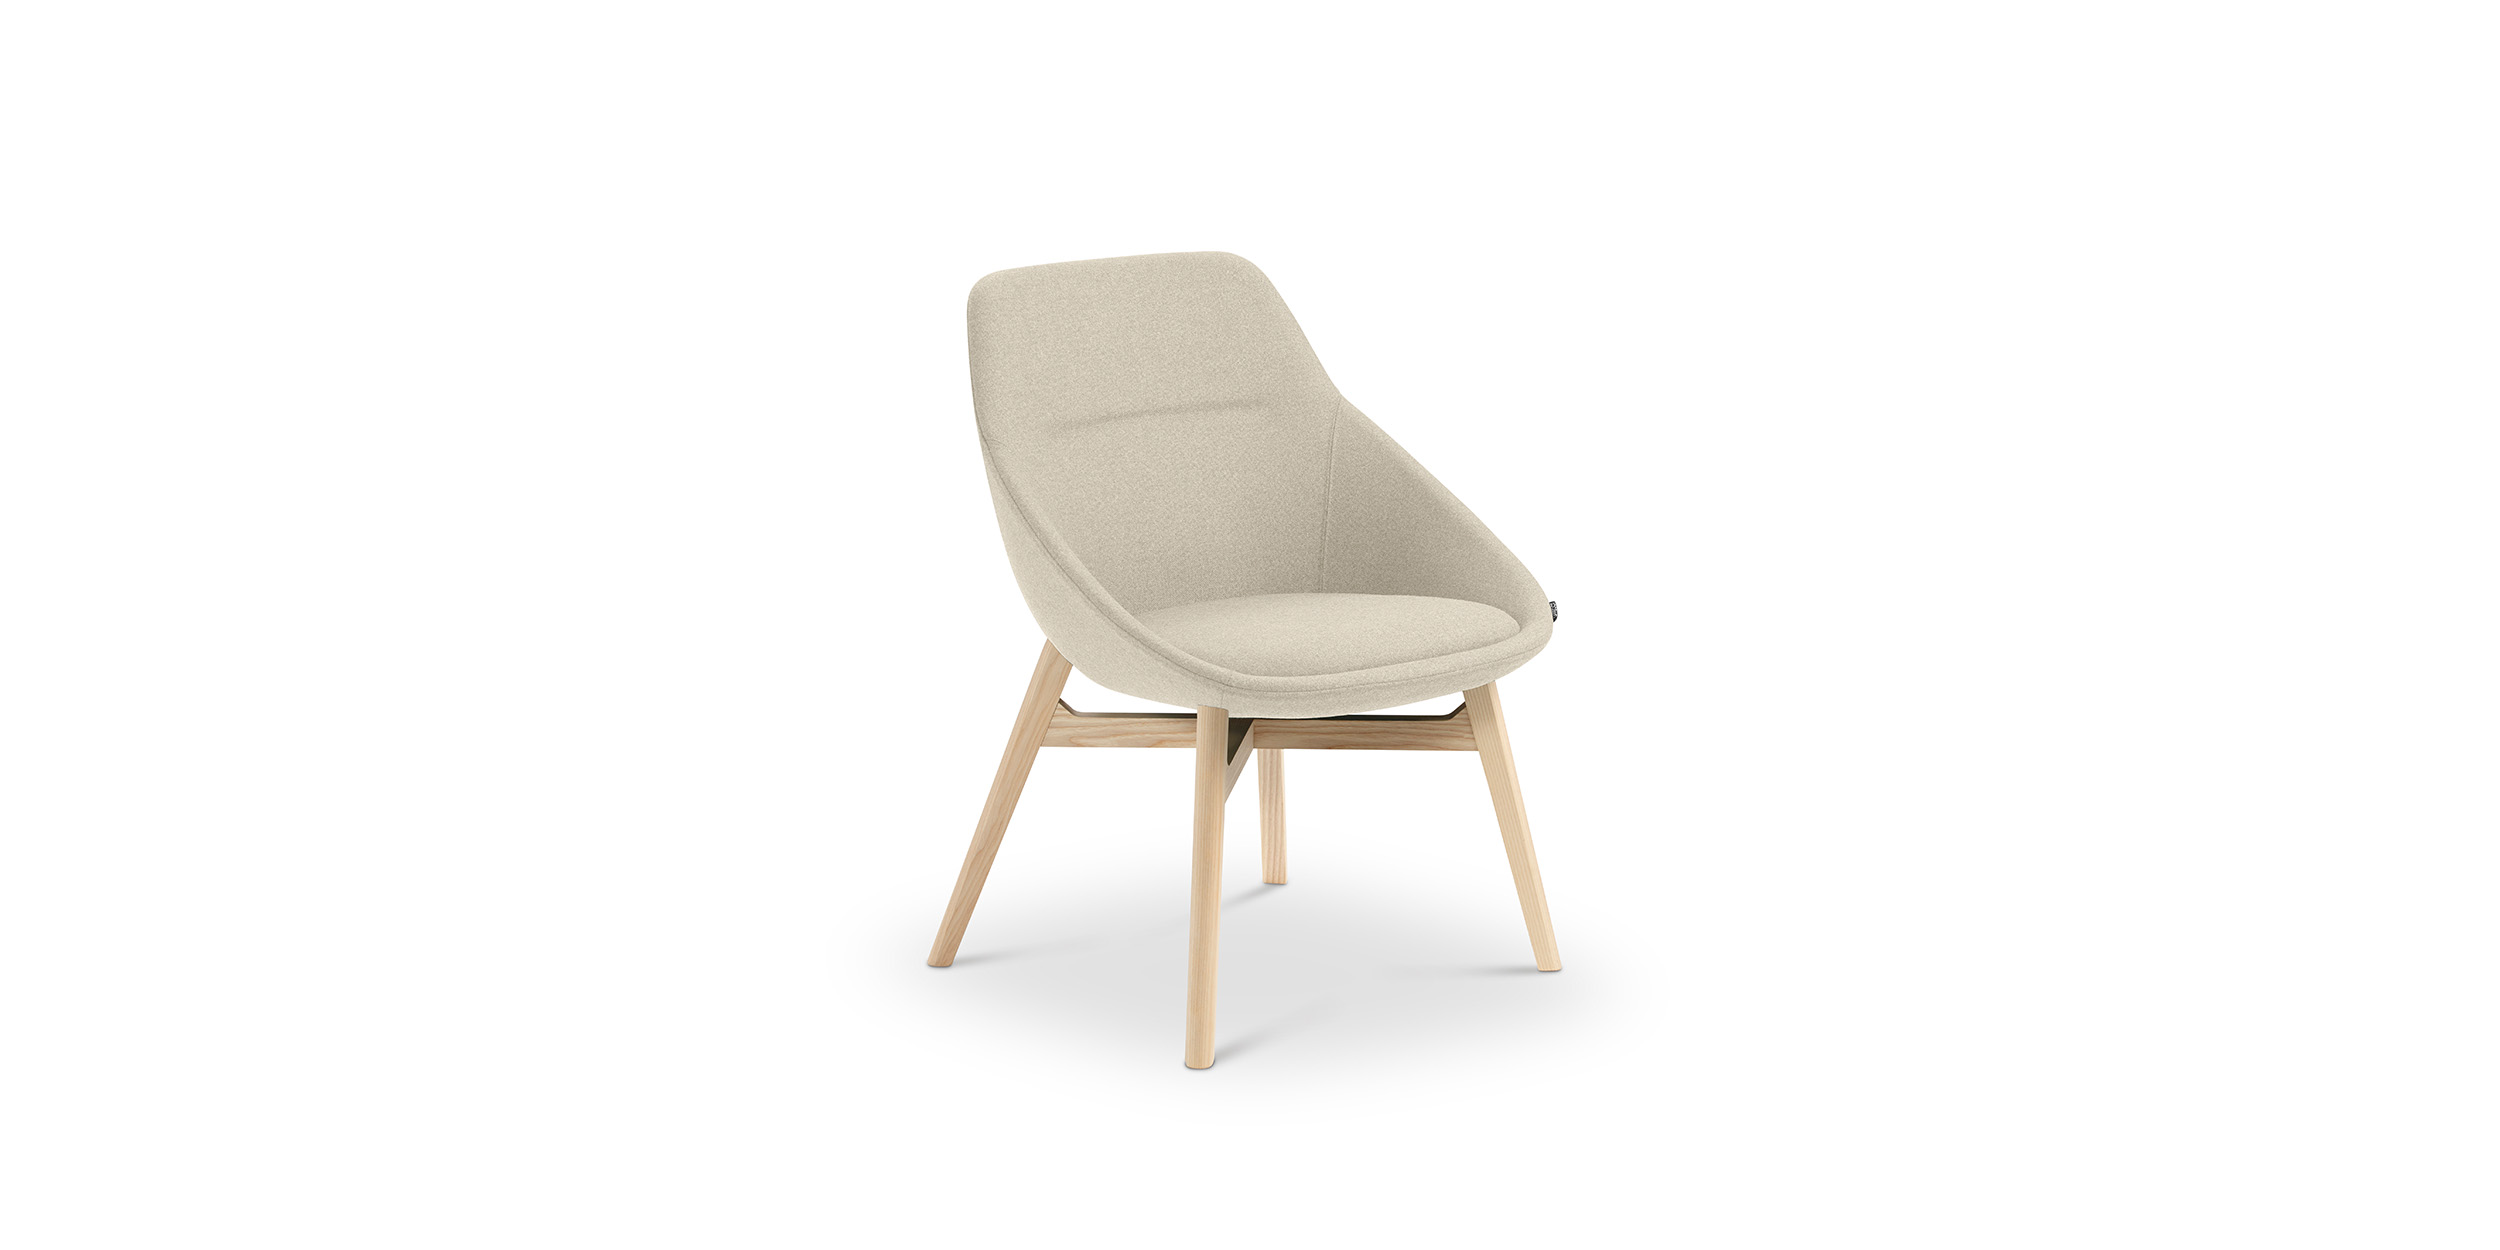 Ezy Wood Low, Chair by Christophe Pillet